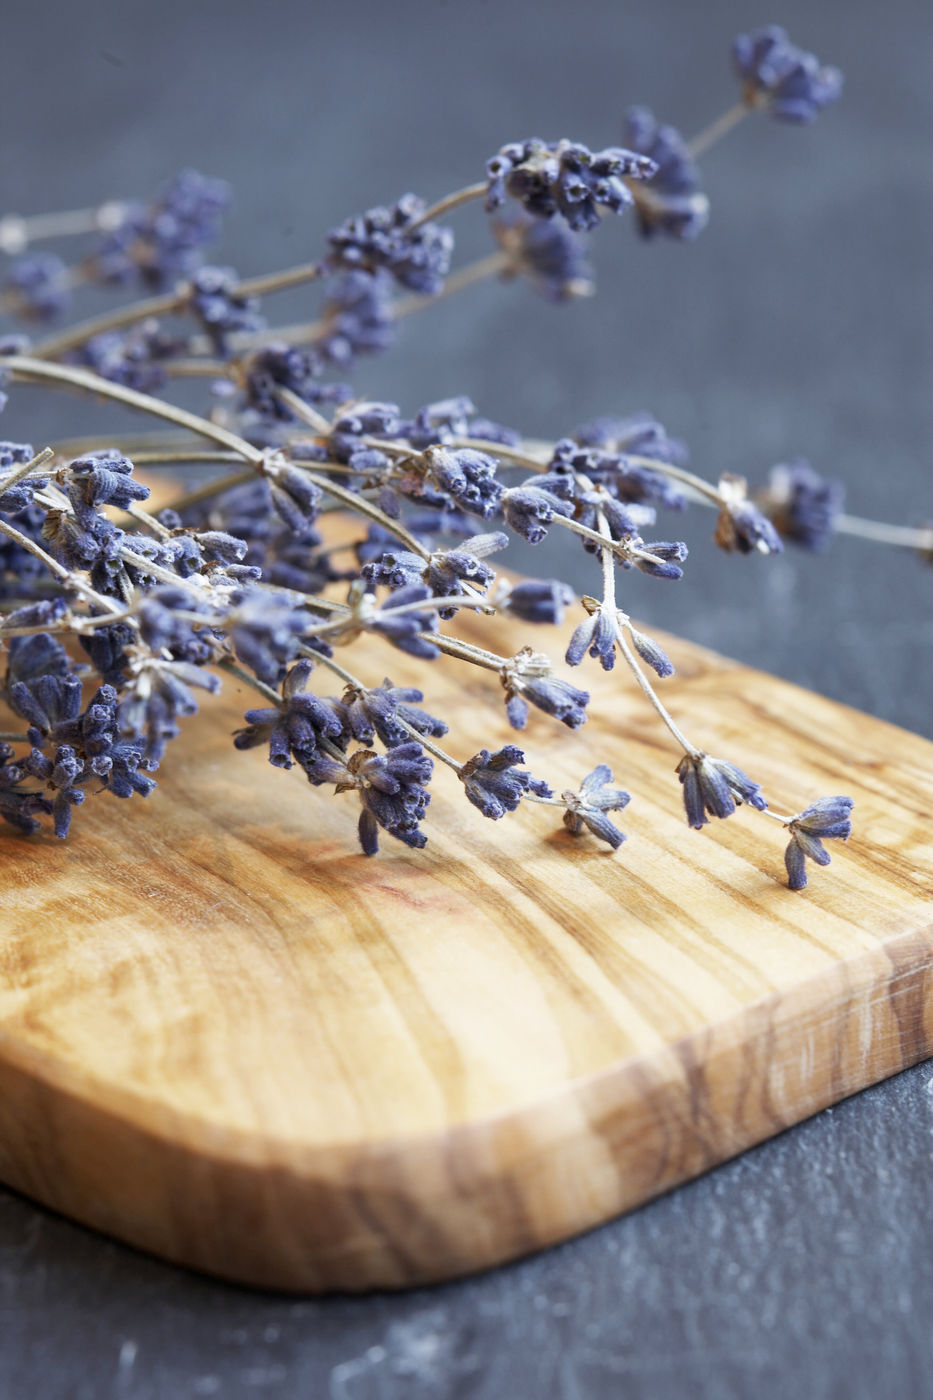 Culinary Lavender Flowers, Dried Edible Lavender Flowers for Cooking